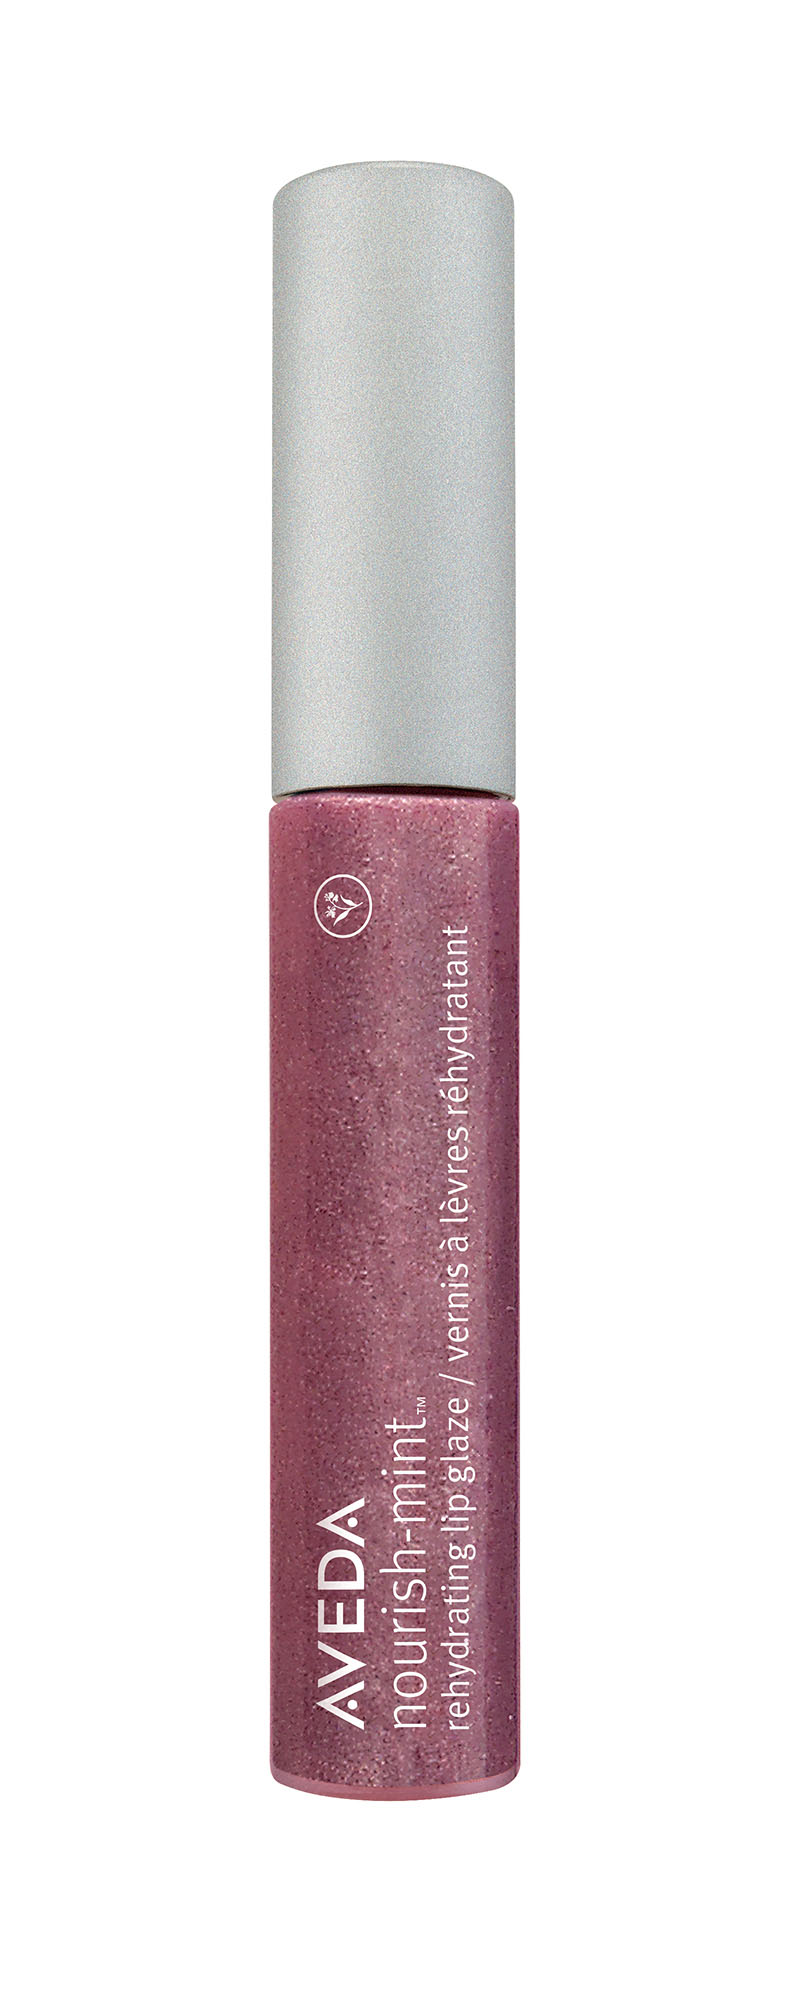 Nourish-Mint_ReHydrating_Lip_Glaze_Pink_Frost_soldier_image.jpg